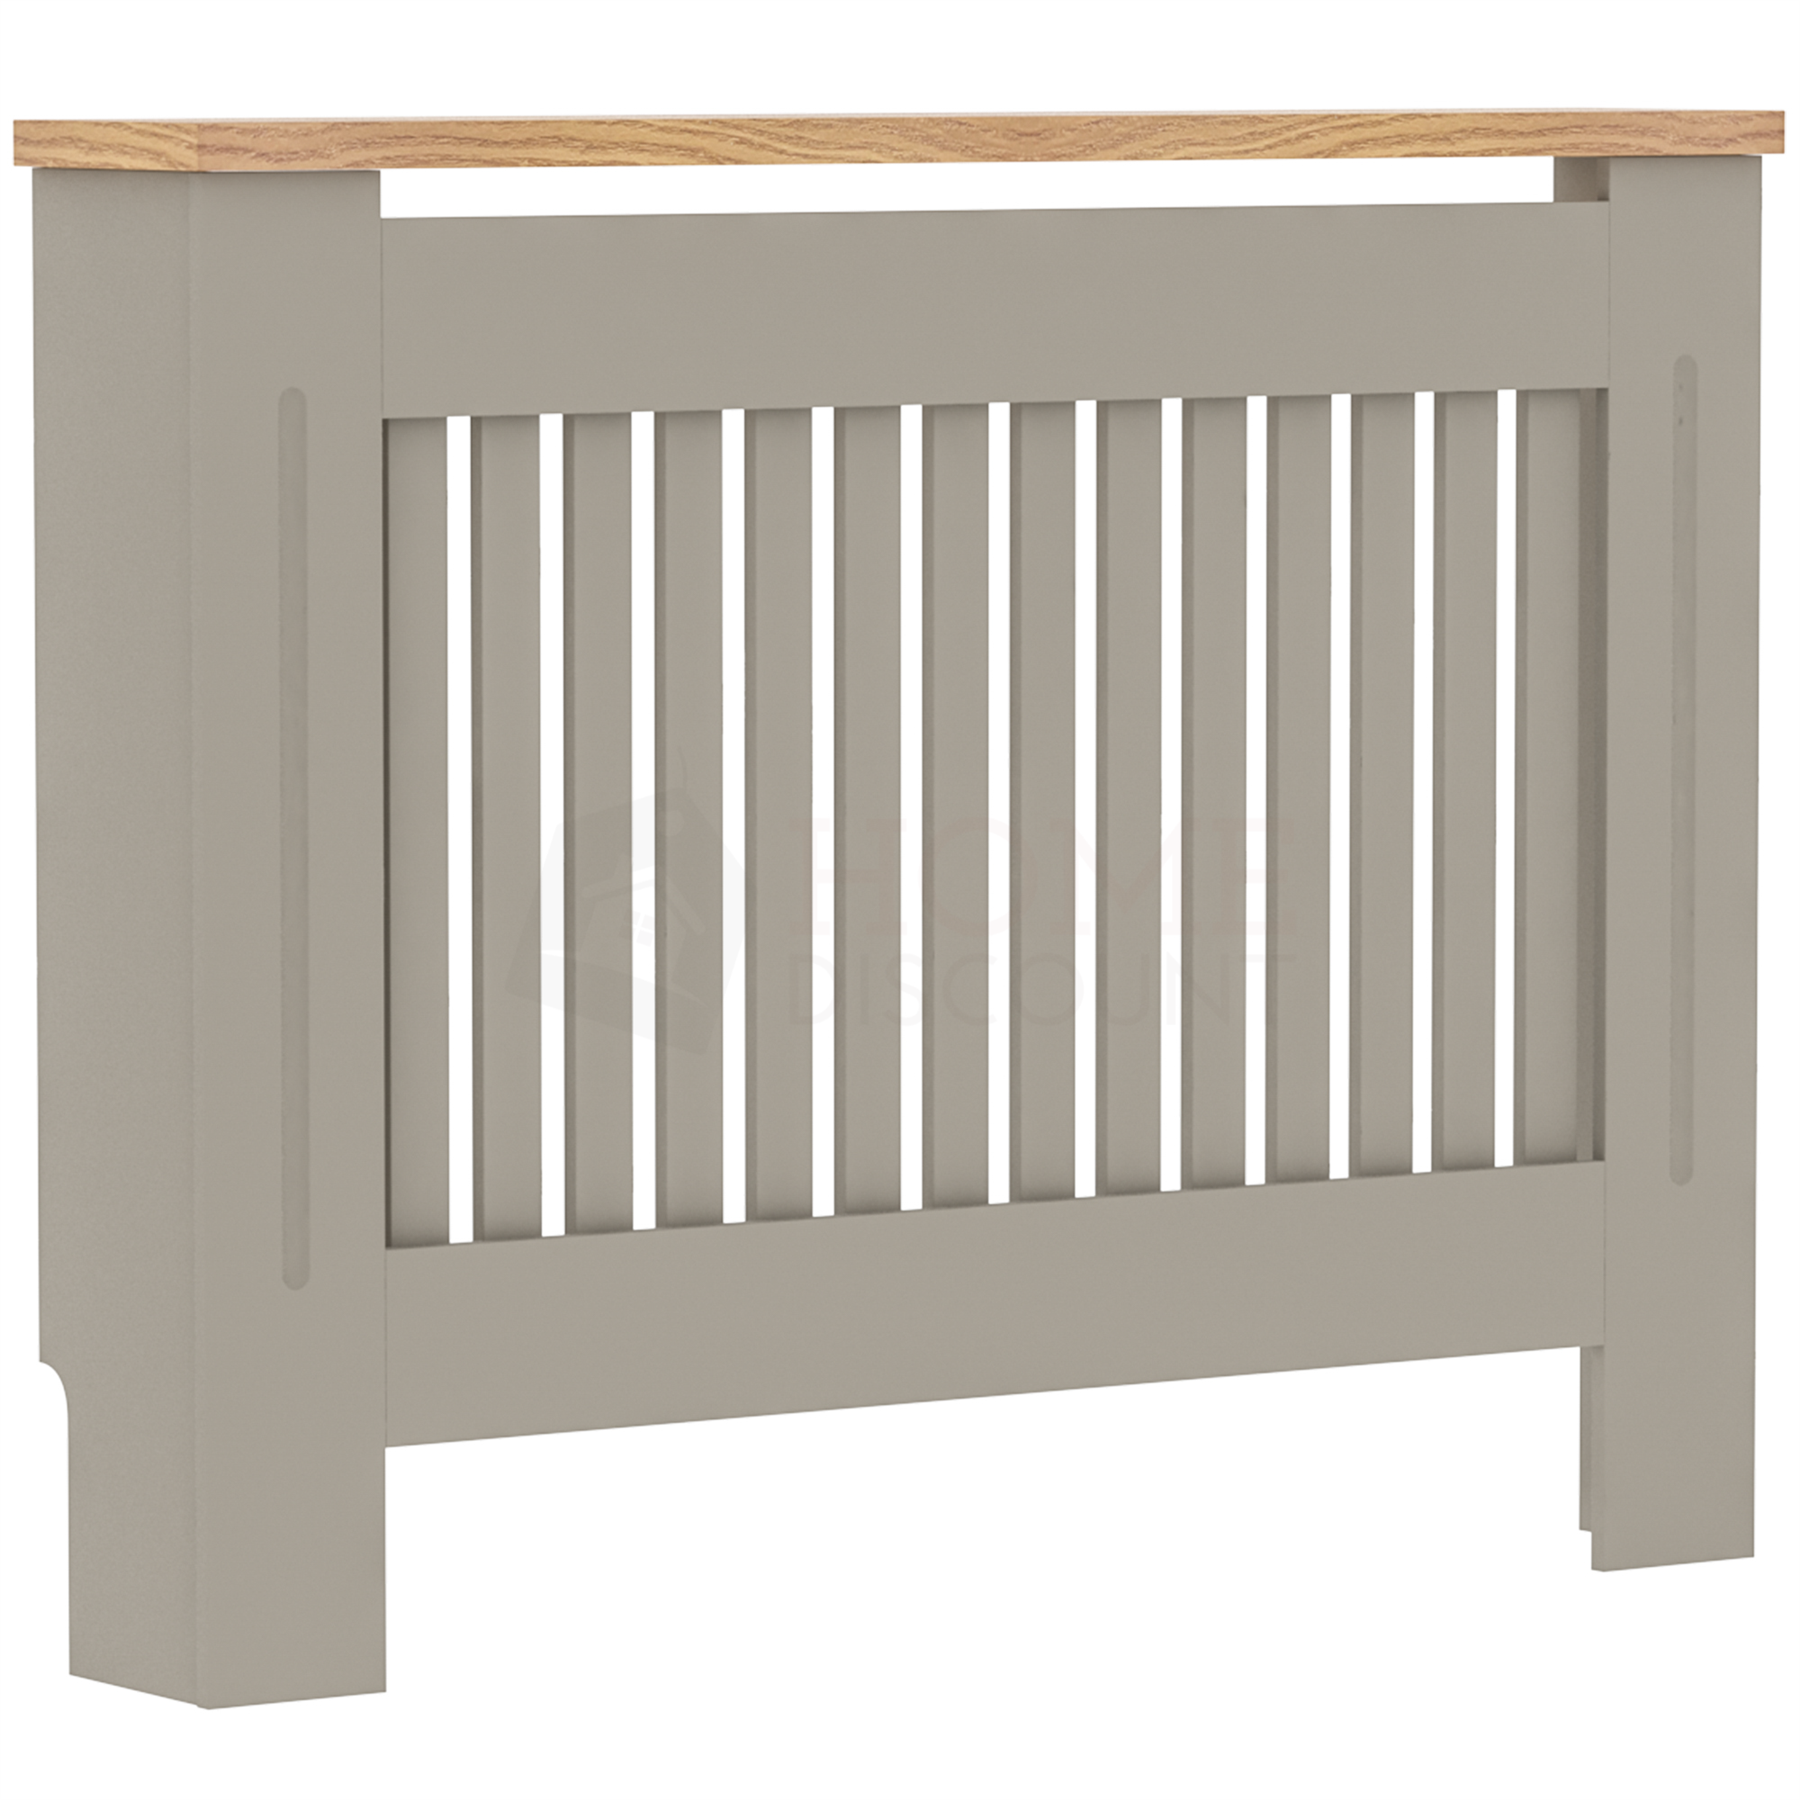 Radiateur-Housse-Blanc-inachevee-MODERNE-BOIS-TRADITIONNELLE-Grill-cabinet-furniture miniature 49